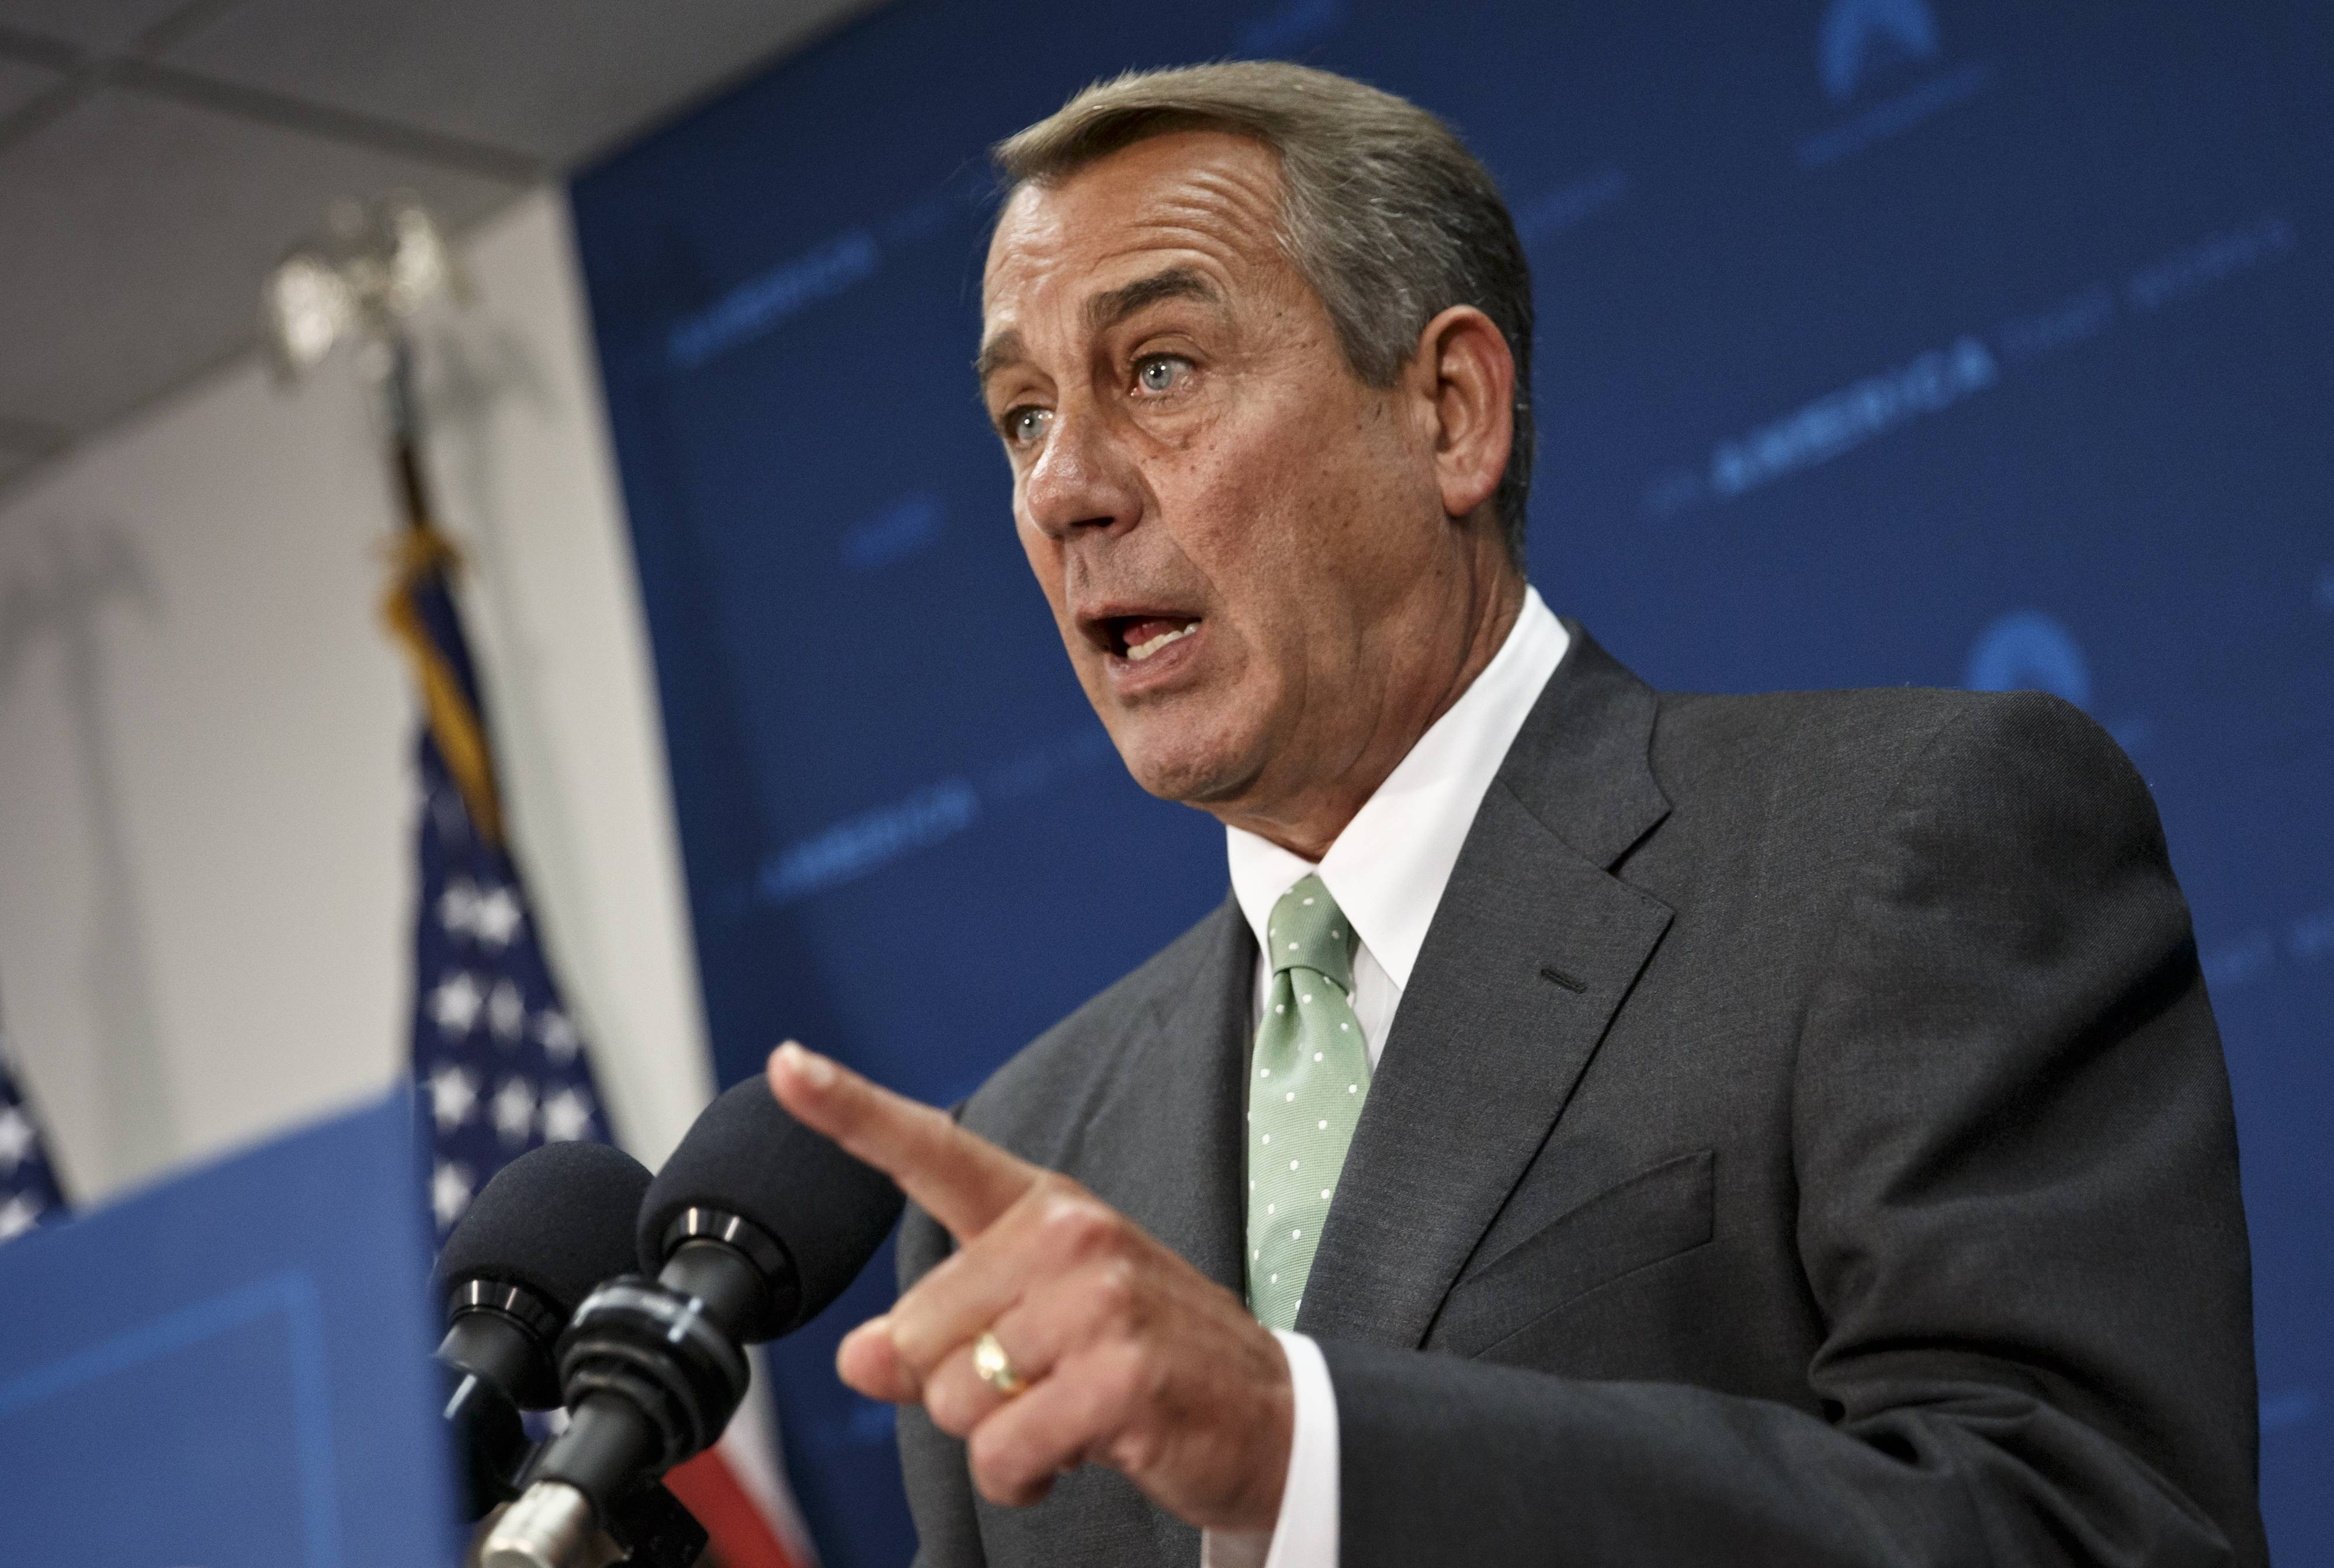 House Speaker John Boehner of Ohio tells reporters Thursday that he isn't quite ready to join other members of Congress who say Veterans Affairs Secretary Eric Shinseki should resign in the wake of problems with the Veterans Affairs troubled health care system.